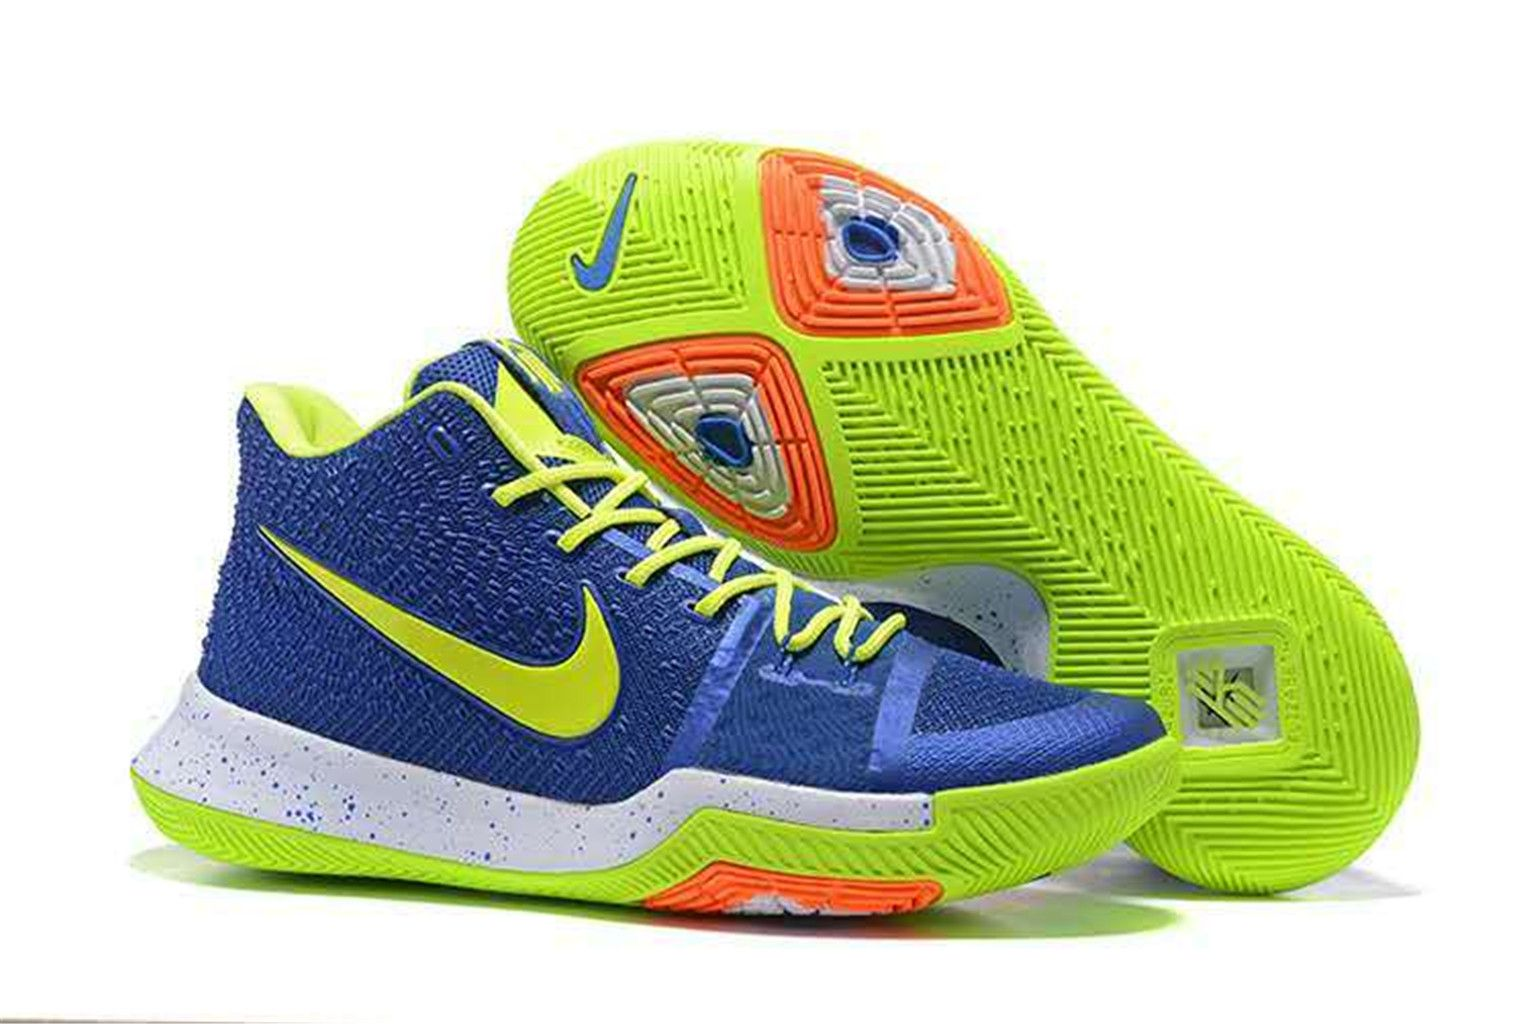 buy popular 5a3b9 620cc Kyrie Irving 3 Basketball Shoes Fluorescent-green Blue on ...